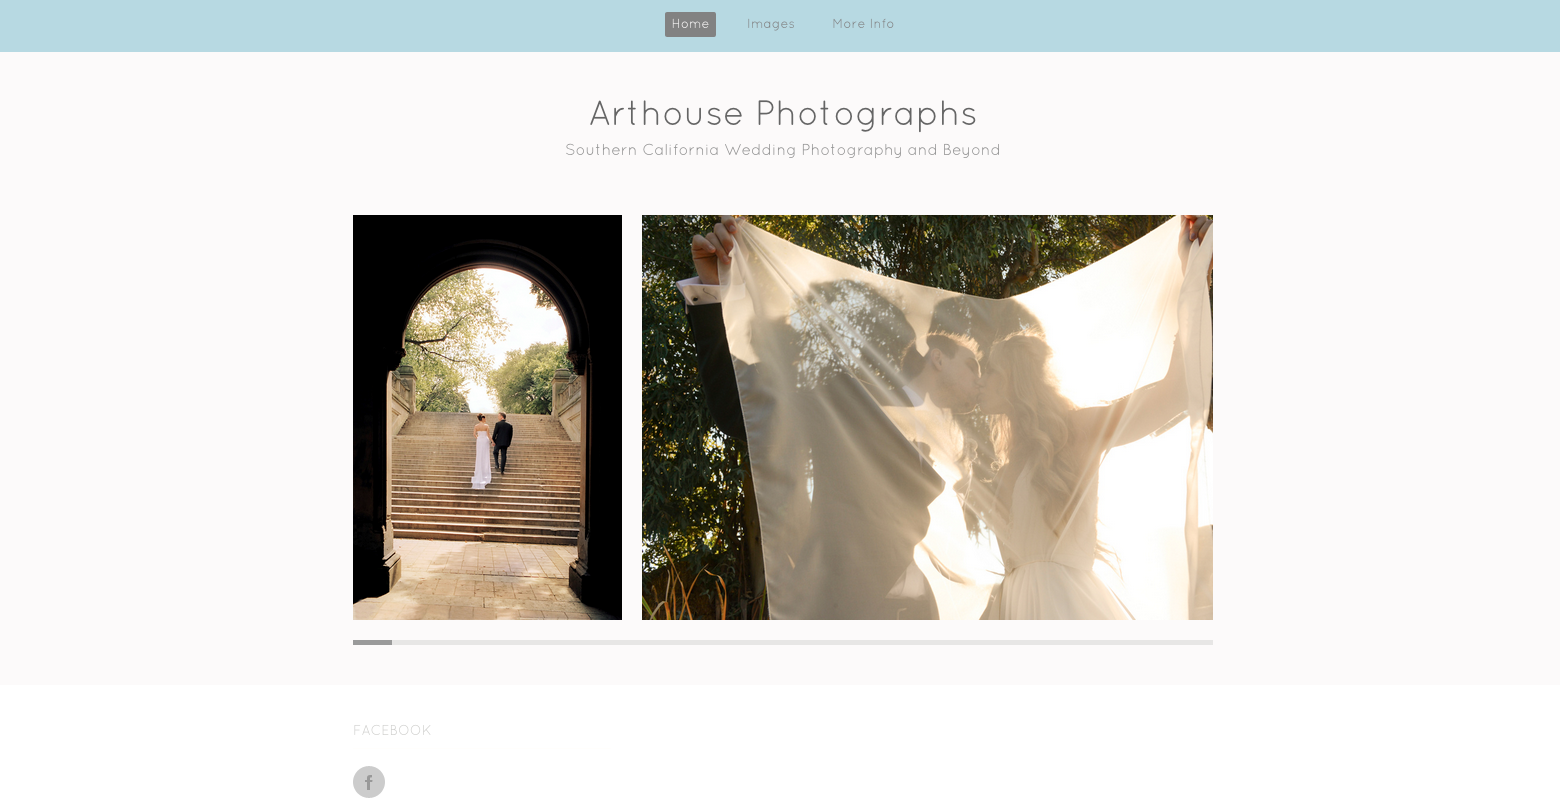 Los Angeles Wedding Photography by Arthouse Photographs